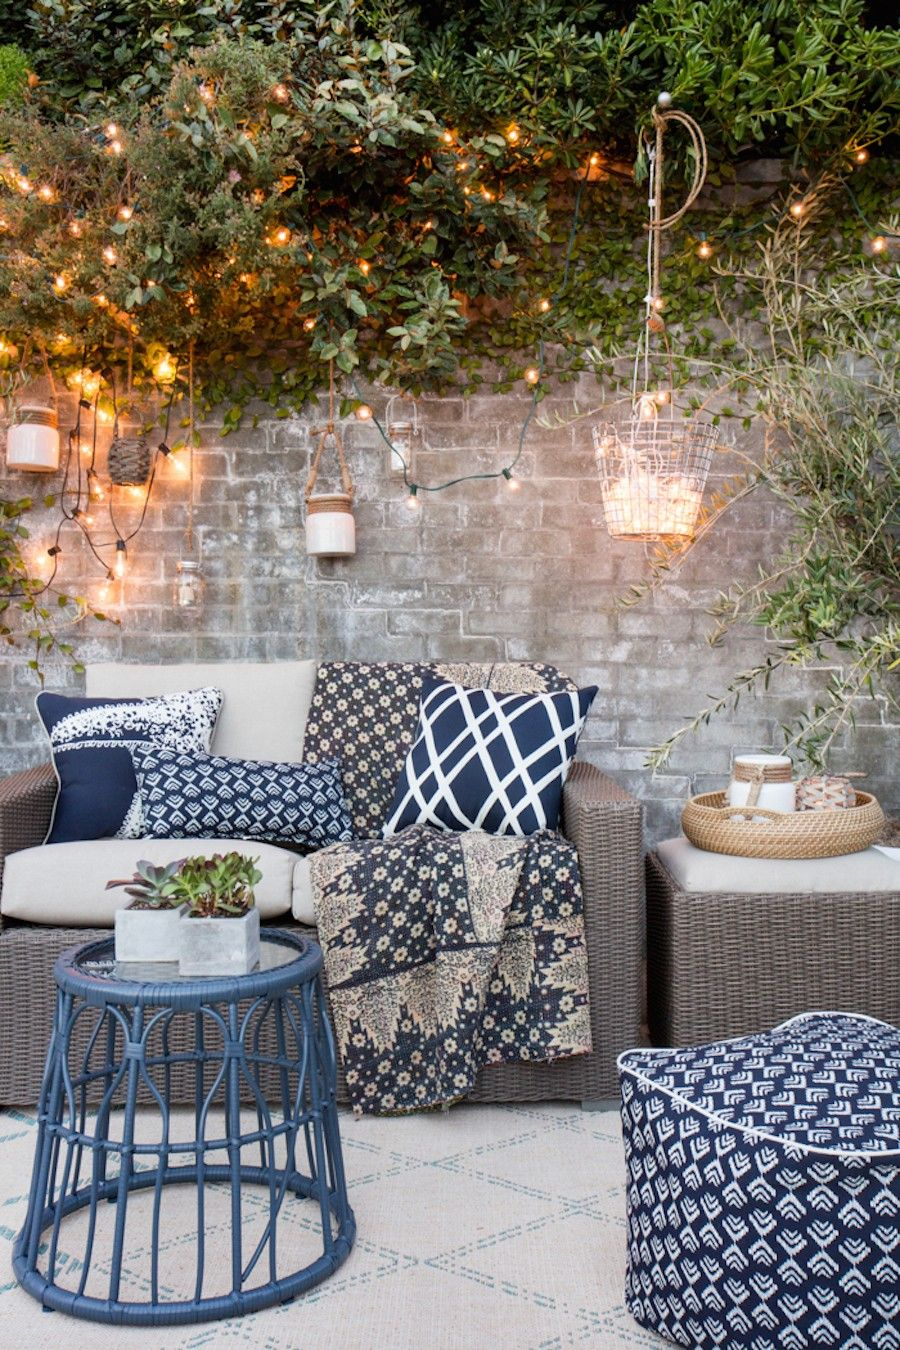 Garden Patio Ideas garden design with outdoor furniture garden furniture uamp lighting ideas with blueberry plant from houseandgarden Laid Back Garden Patio